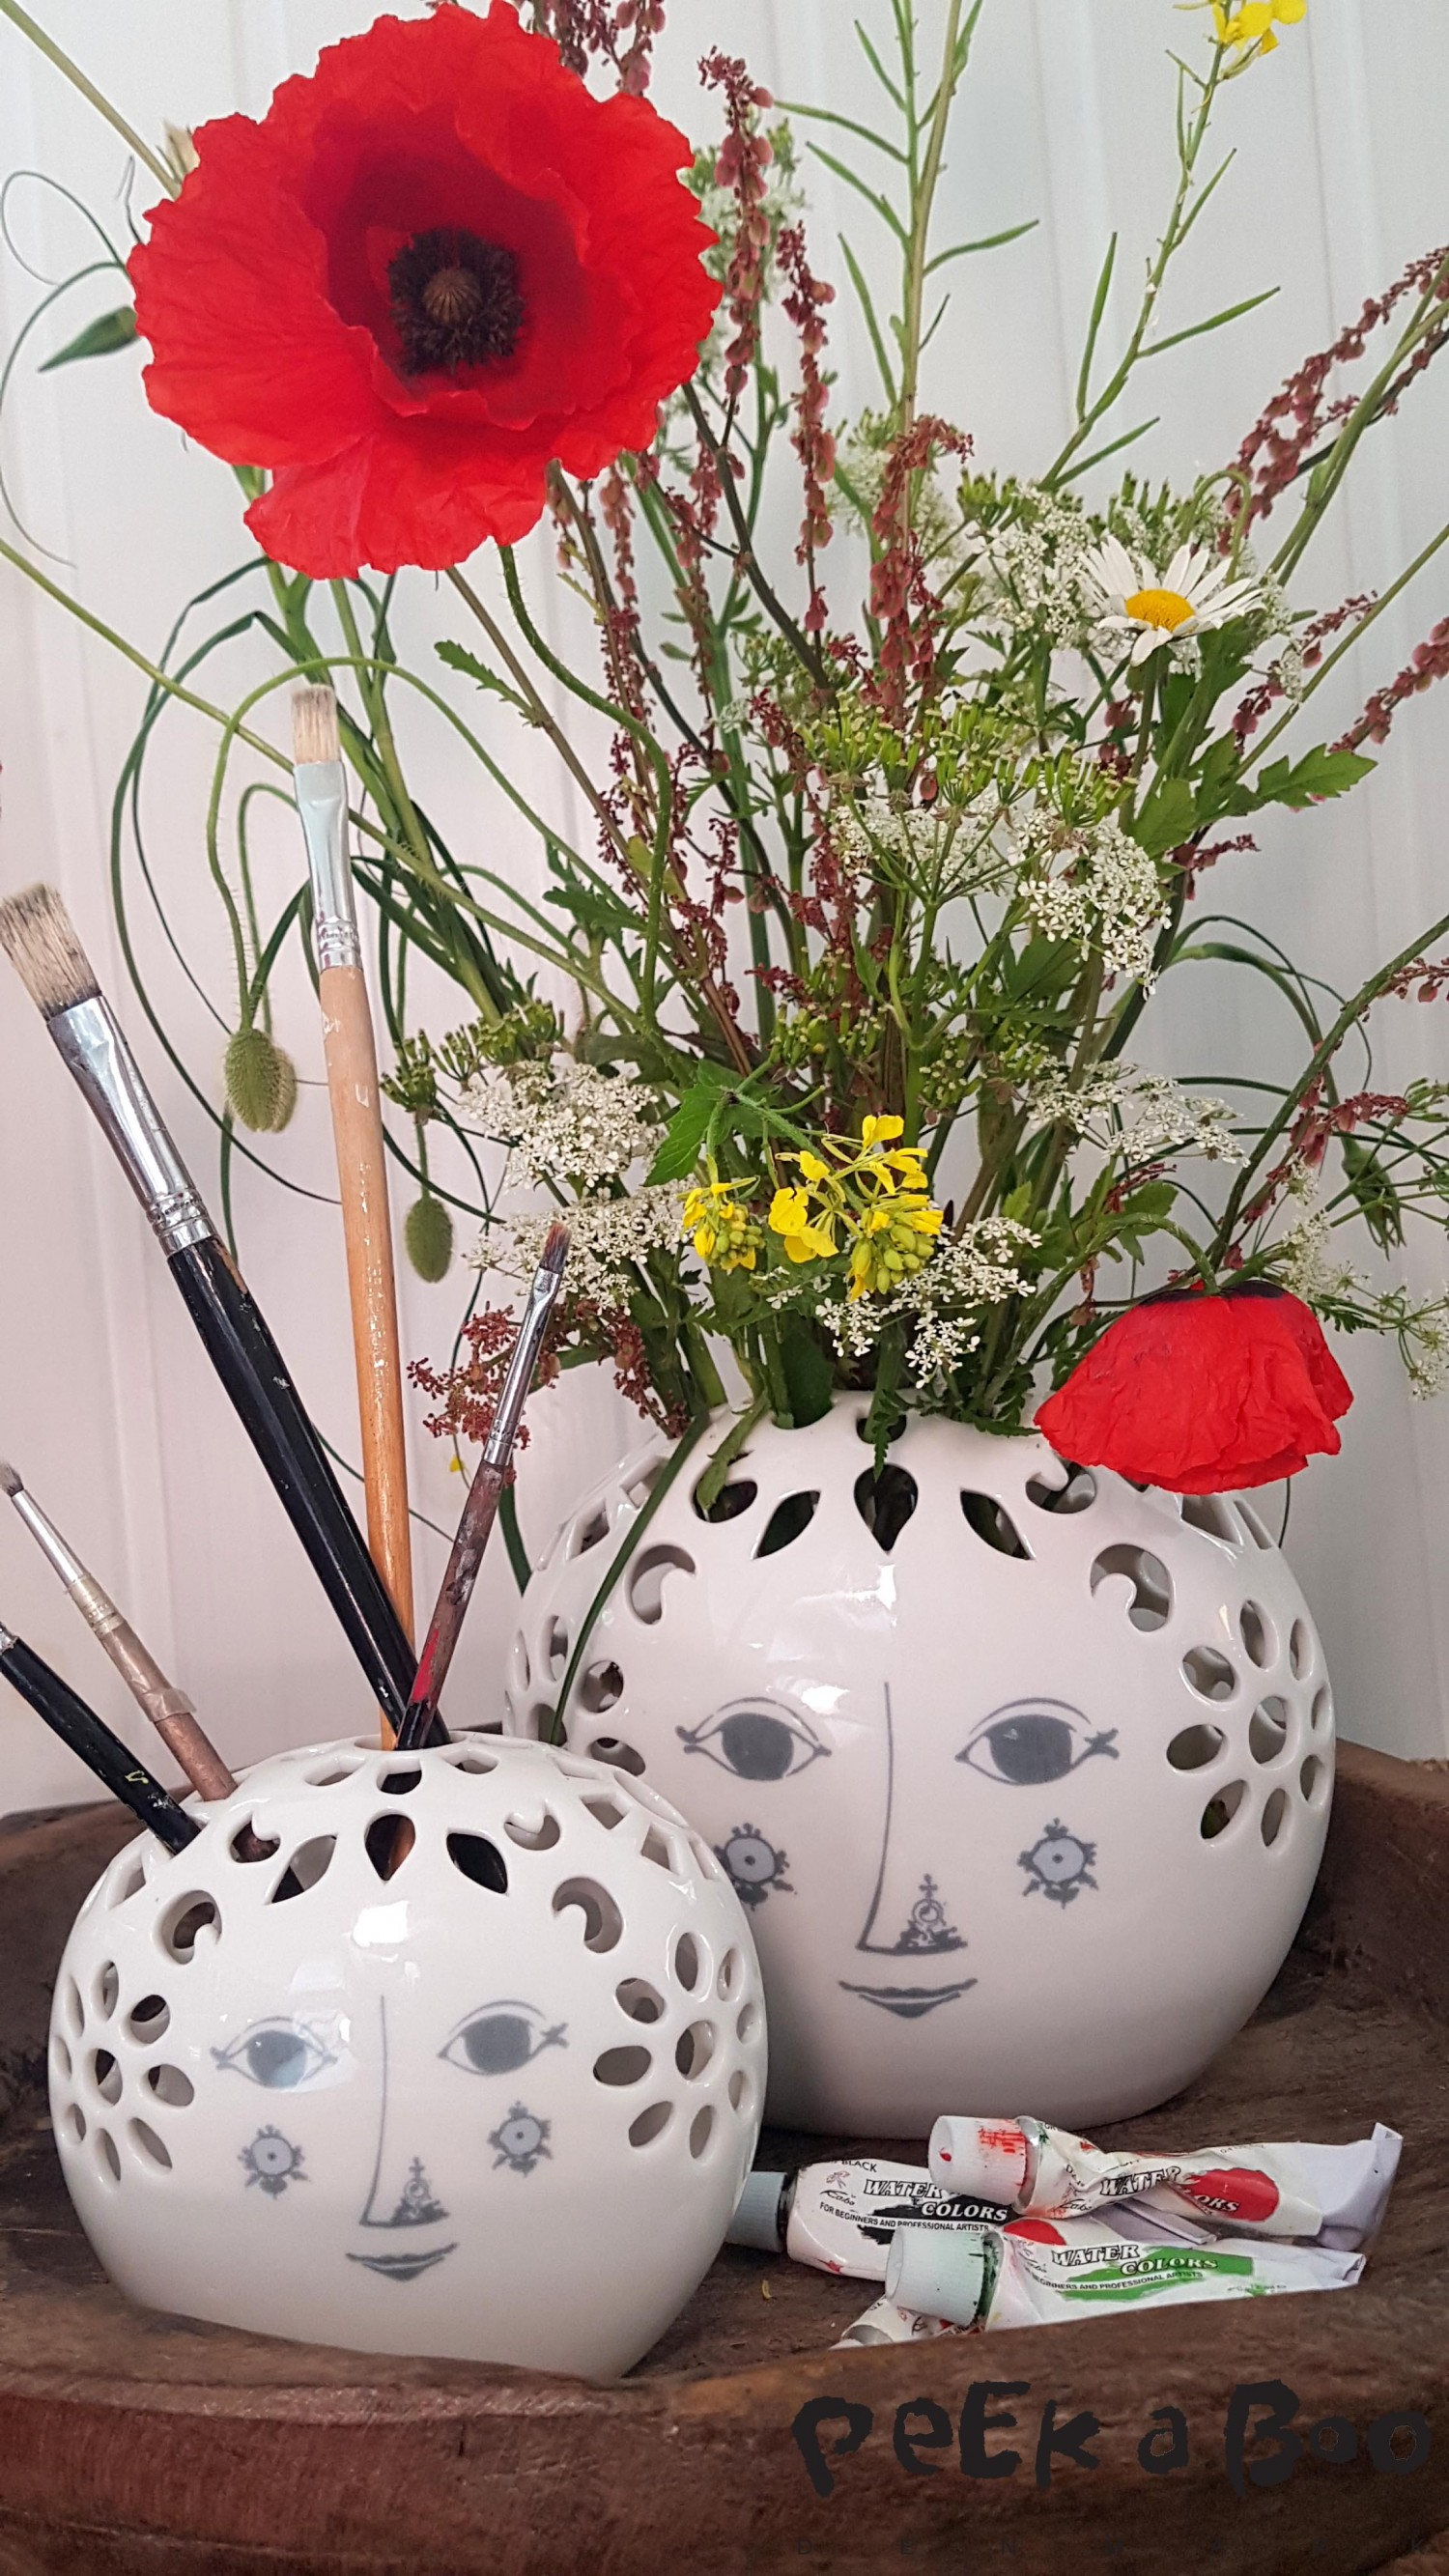 The new vases from the danish designer Bjørn Wiinblad. It is a fusion between the danish simplicity and the japanese Ikabana, a way to arrange flowers through holes in the top of the vase.